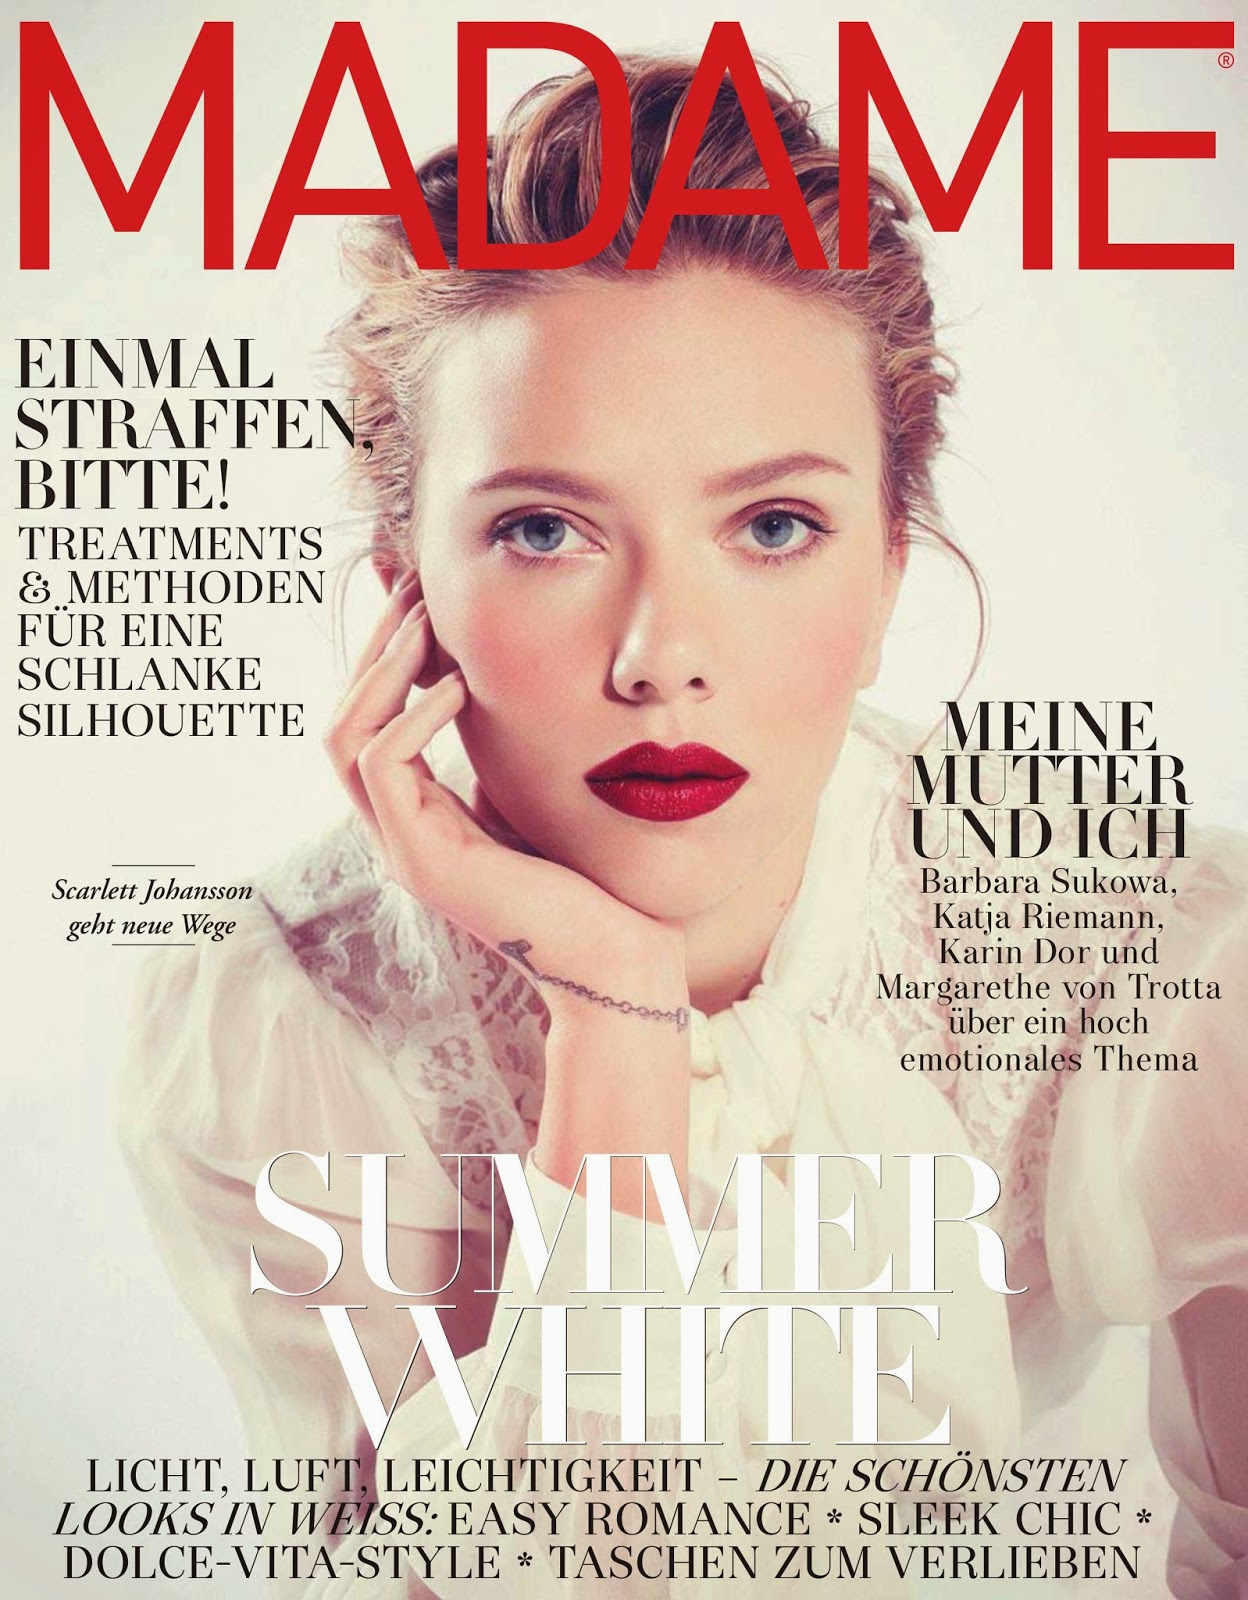 Actress, Singer, Model @ Scarlett Johansson - Madame Germany May 2015